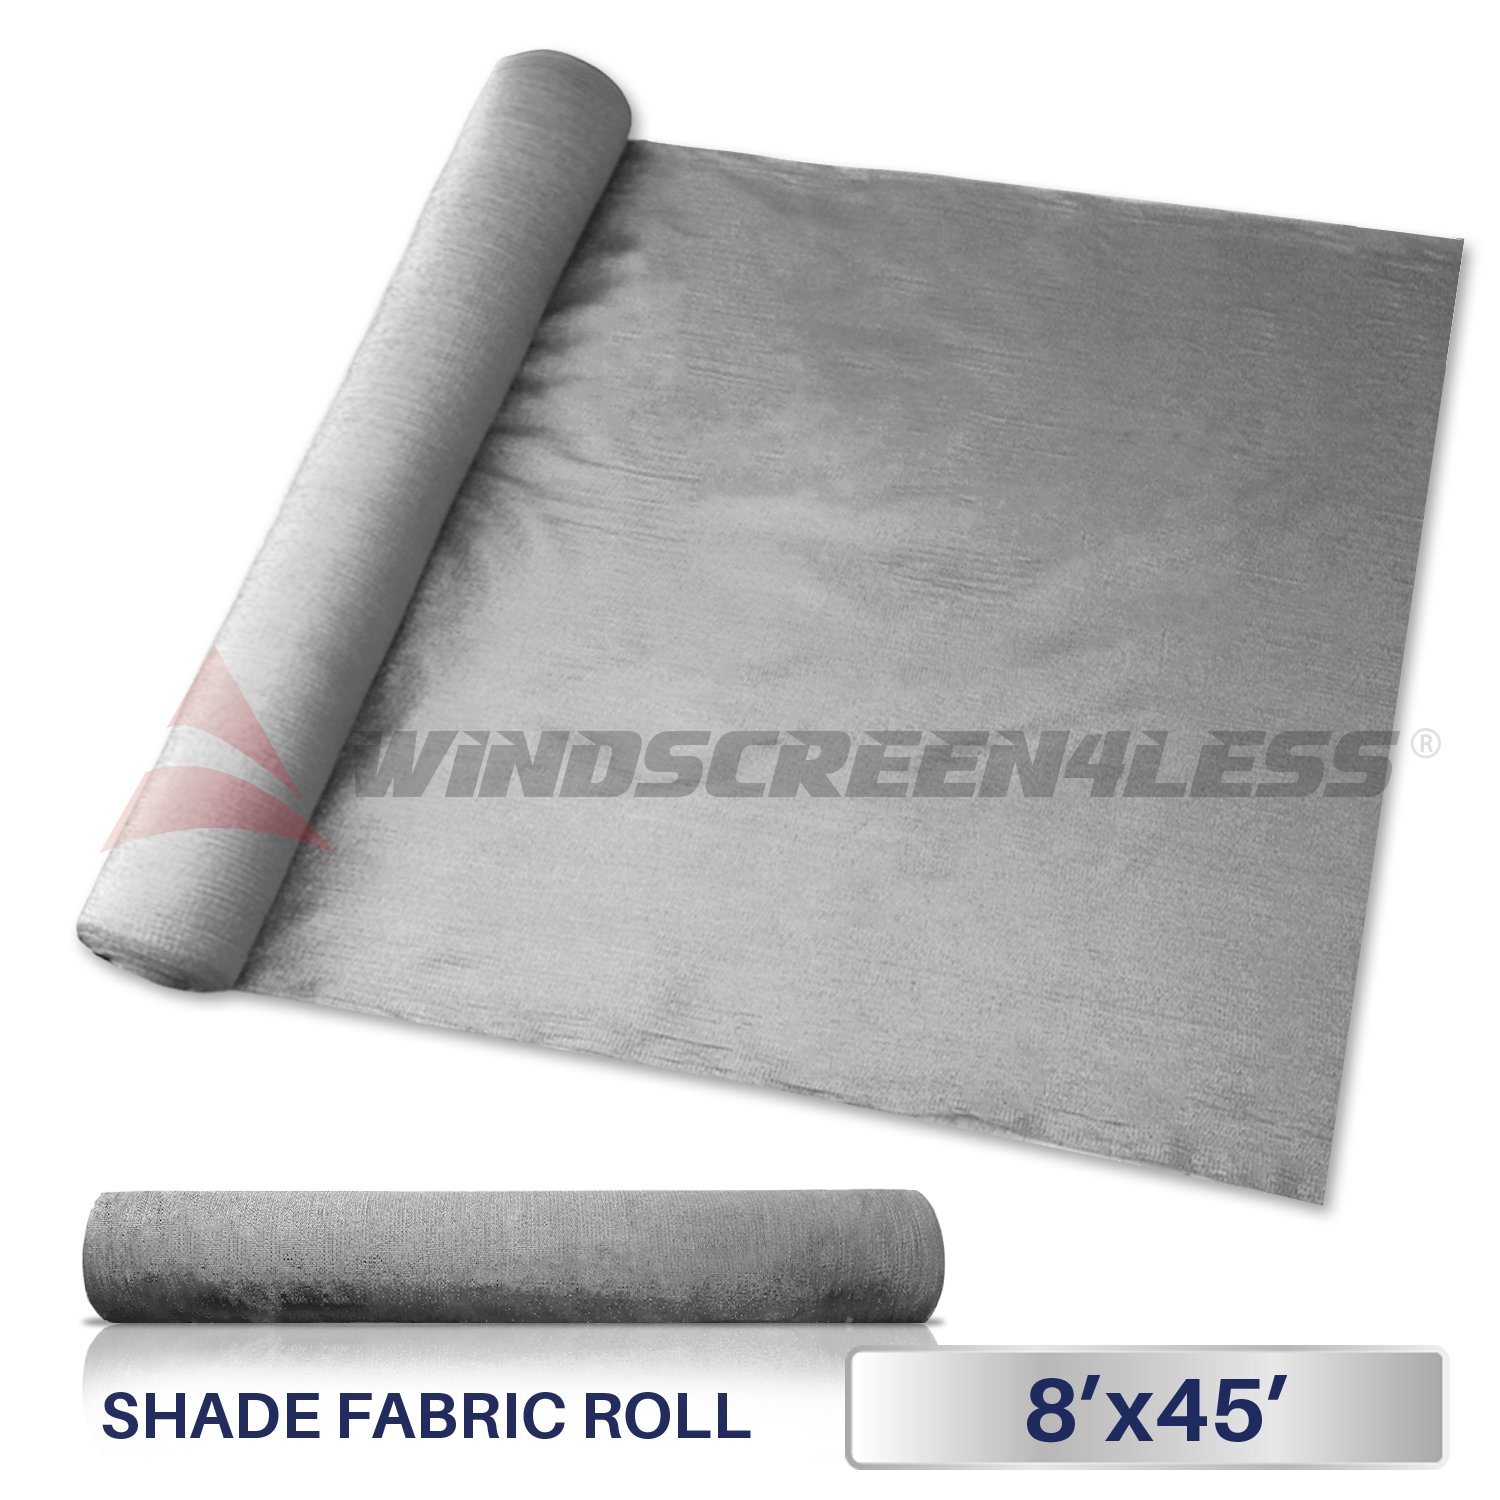 Windscreen4less Light Grey Sunblock Shade Cloth,95% UV Block Shade Fabric Roll 8ft x 45ft